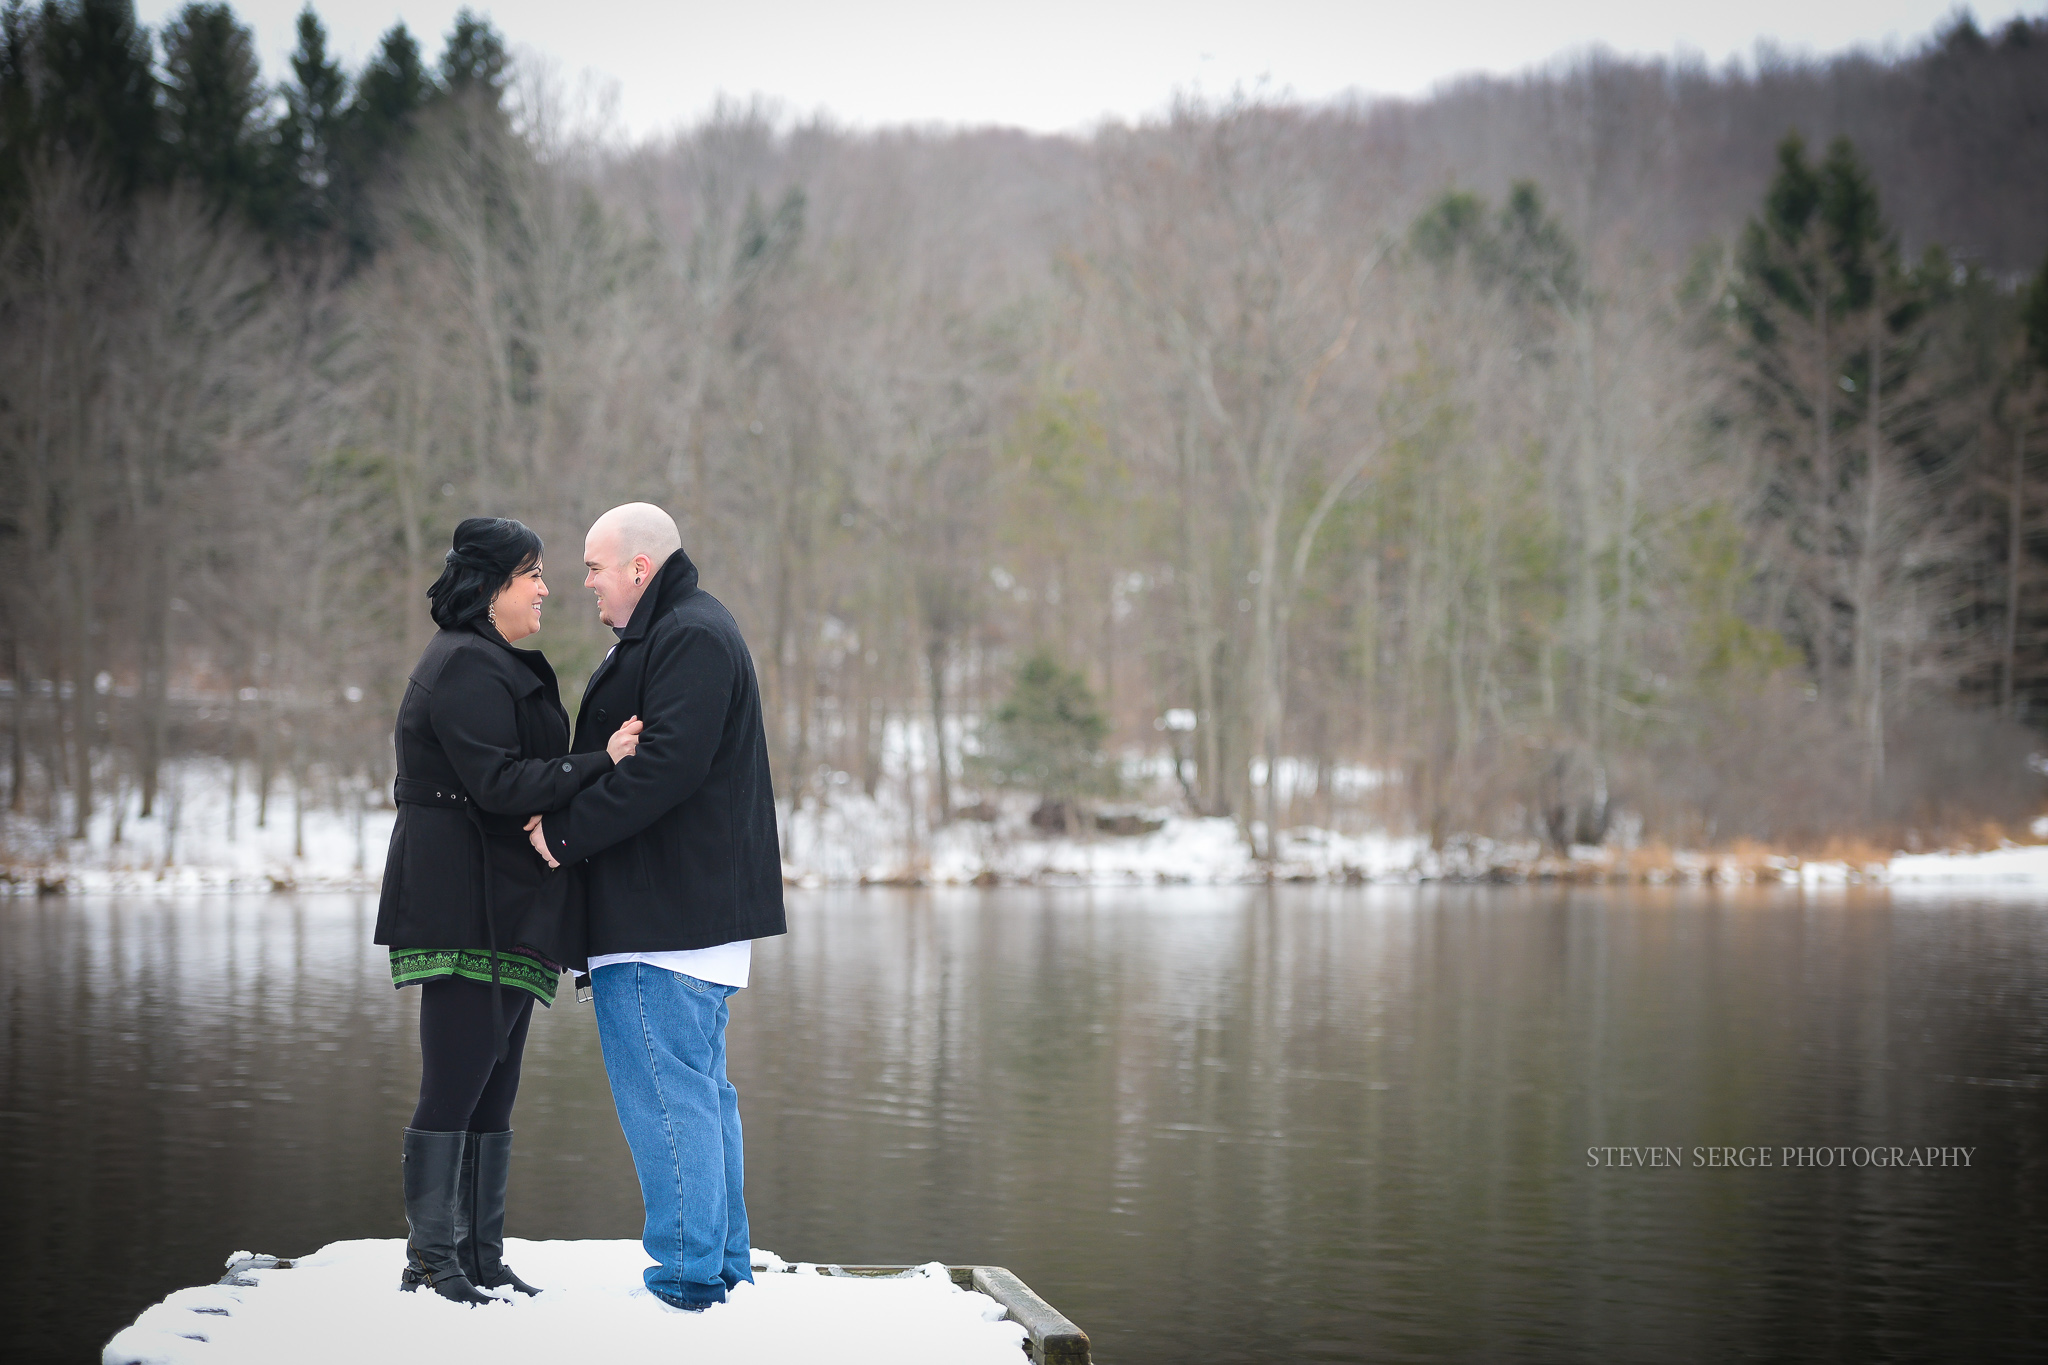 Rosa-NEPA-Wedding-Engagement-Photographer-Waverly-Clarks-Summit-Scranton-Photographer-4.jpg